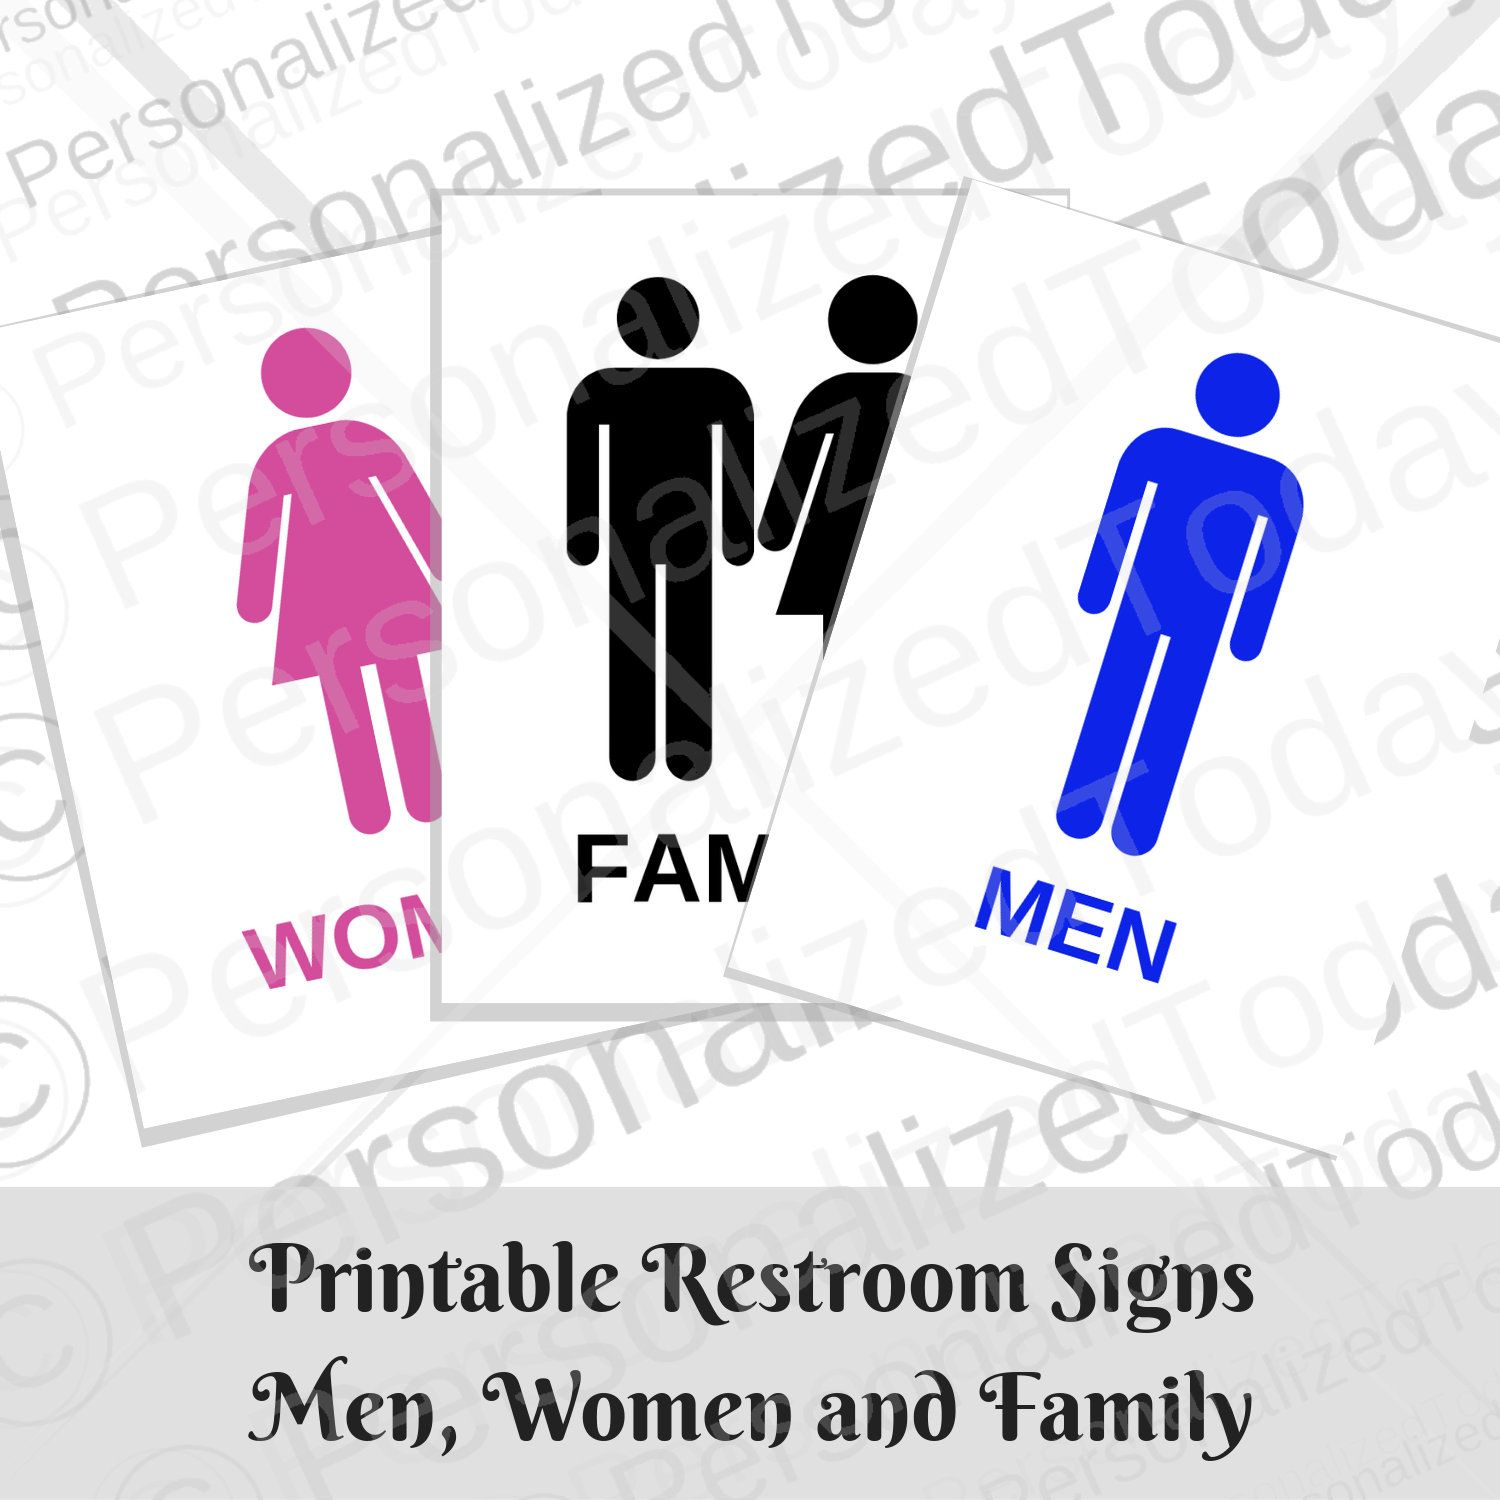 Bathroom Door Restroom Printable Signs Men Women And Family With Bonus Employees Only And Restroom Out Of Order Printable Signs Printable Signs Sign Man Wash Hands Sign